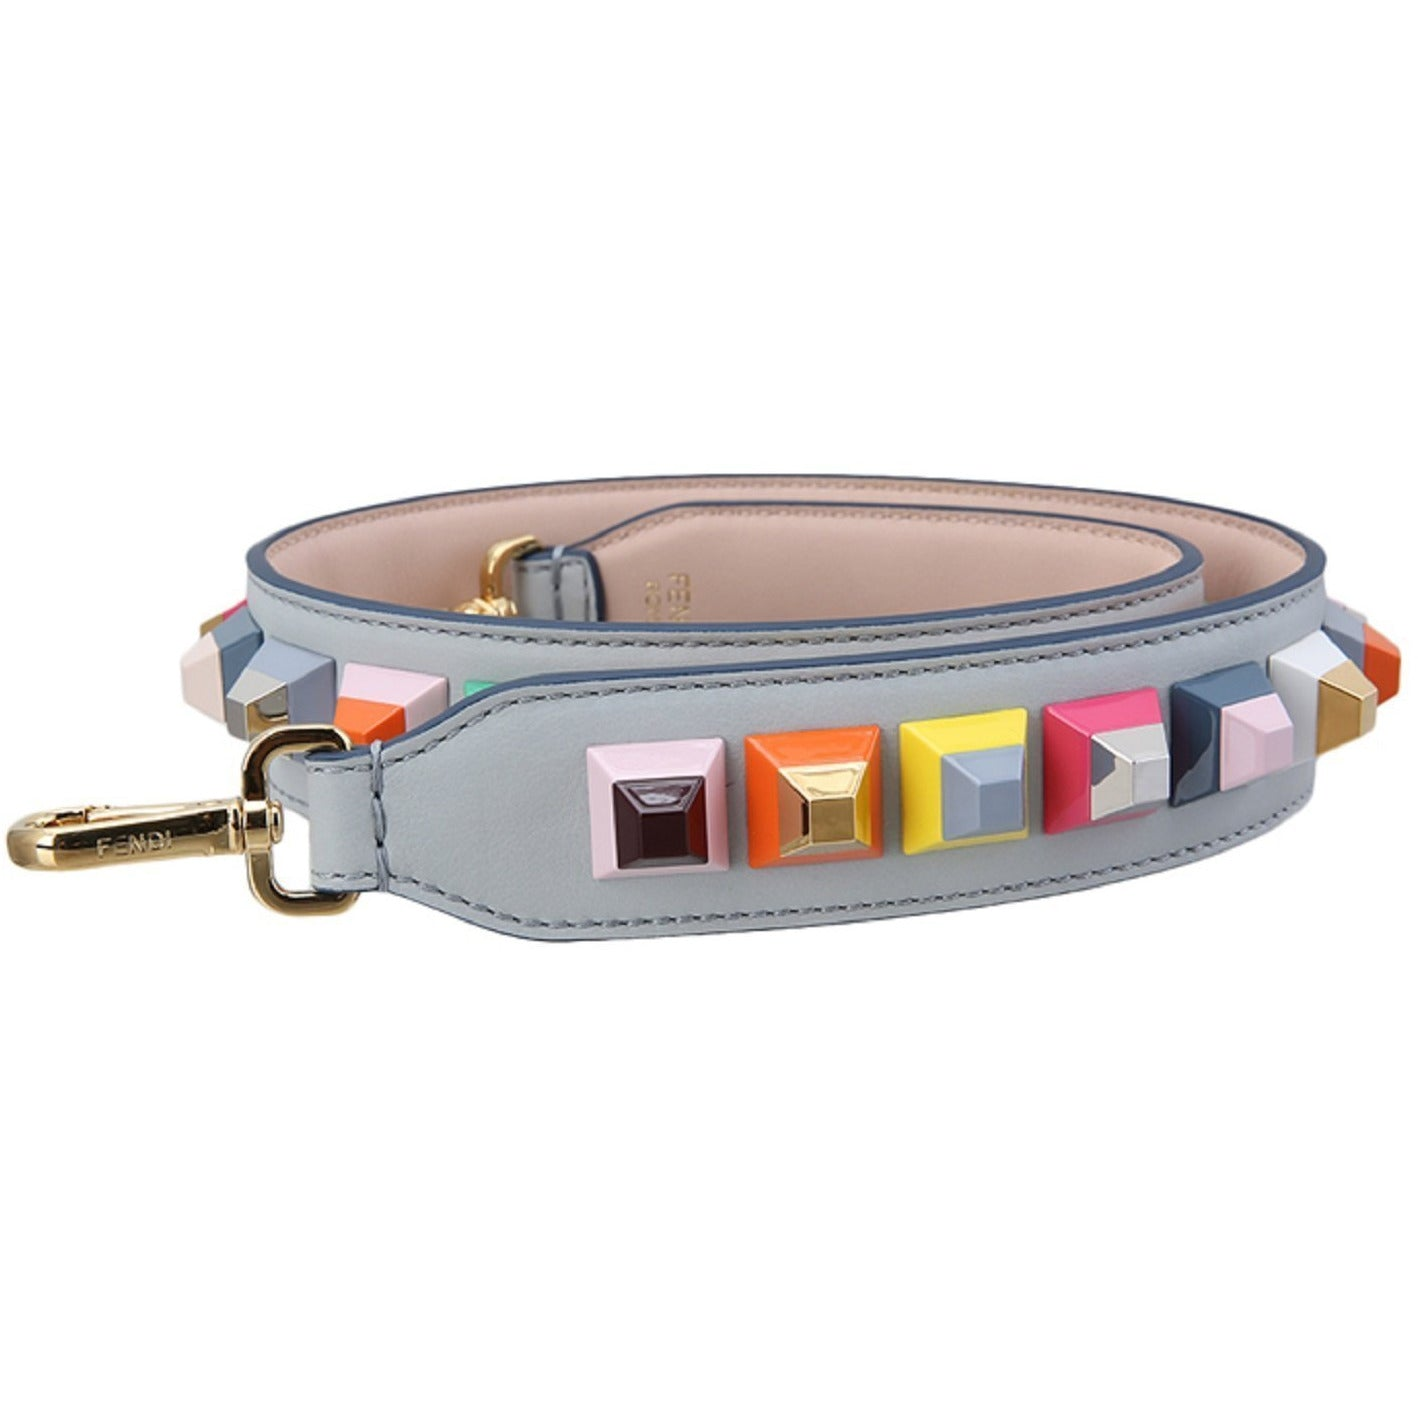 Fendi Shoulder Strap You Leather Pearl Gray Multicolor Studs 8AV077